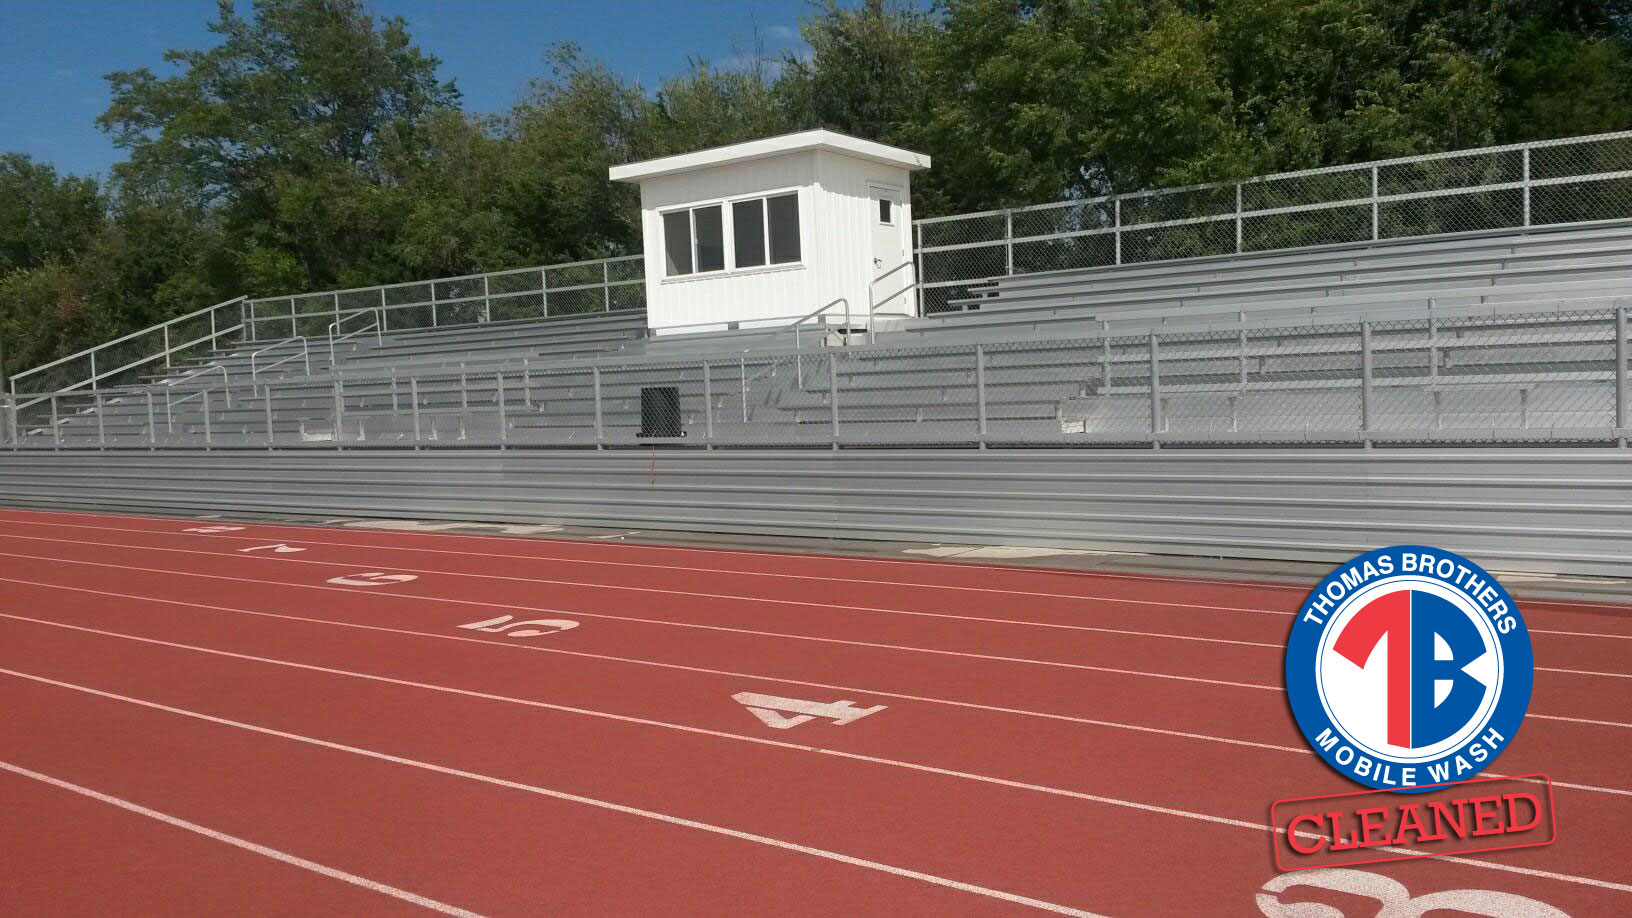 bleachers-powerwashed-thomasbros.jpg